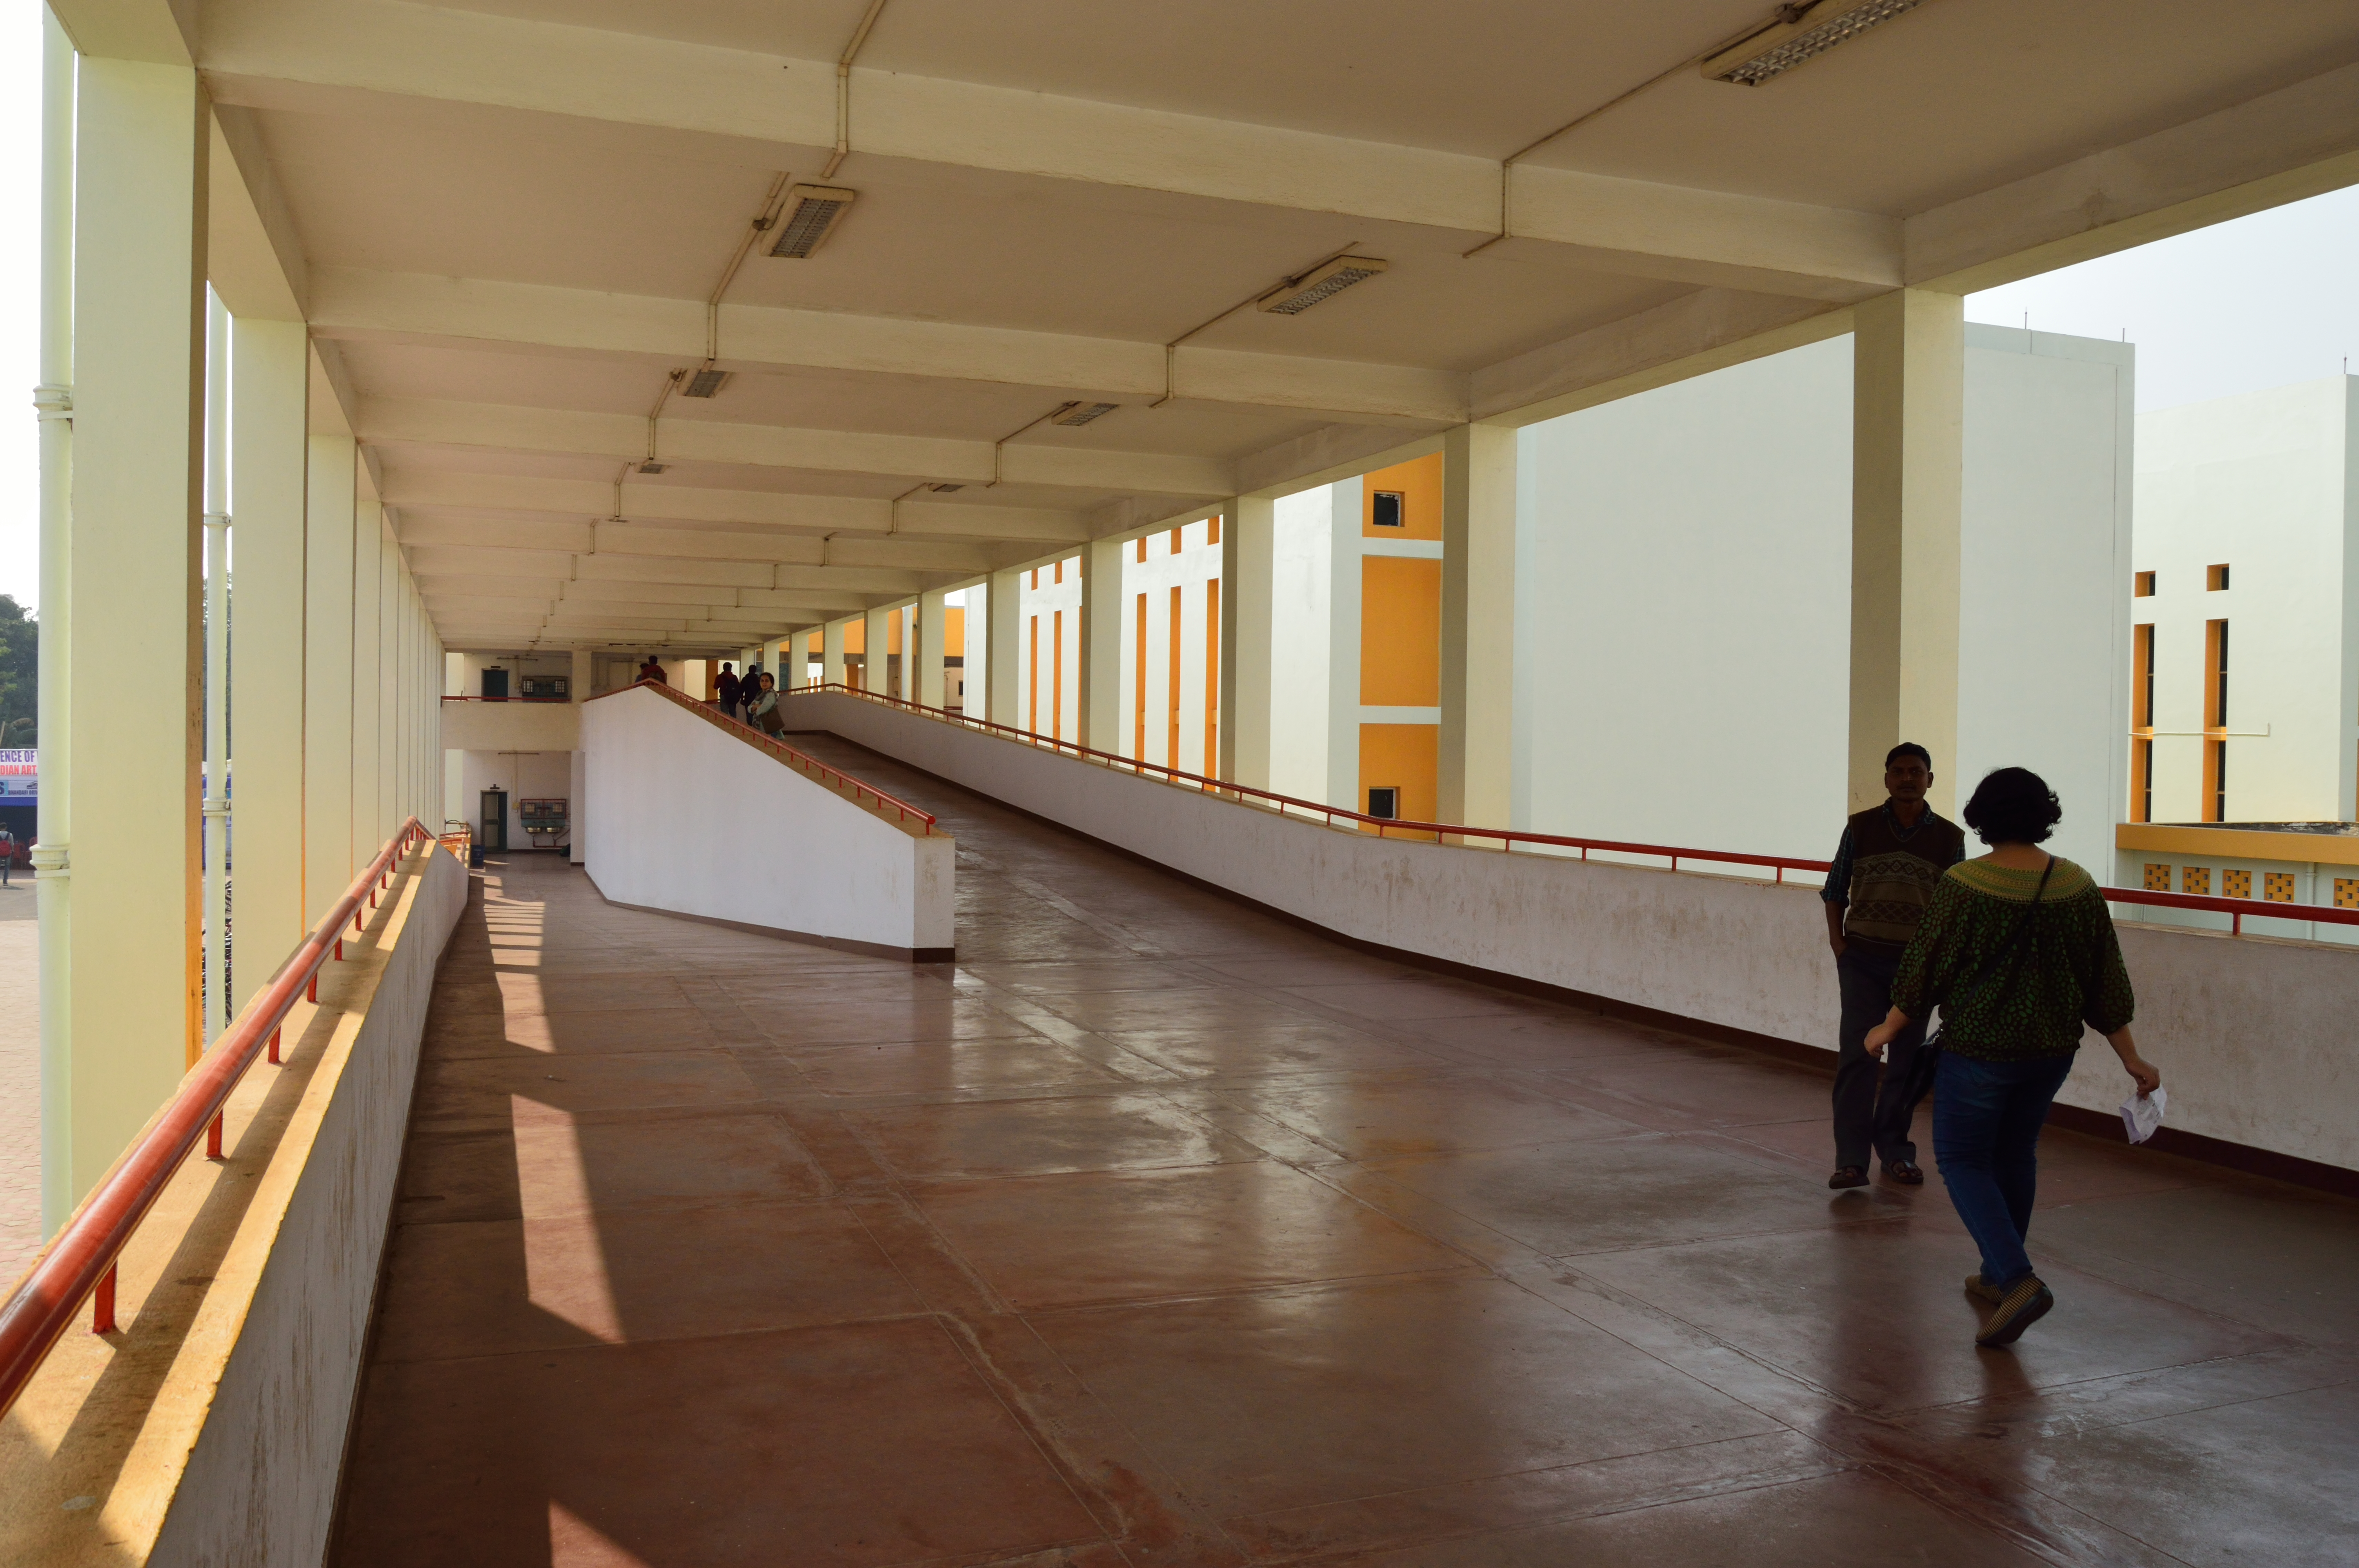 Indian institute of technology kharagpur - File Ramps Vikramshila Building Srinivasa Ramanujan Complex Indian Institute Of Technology